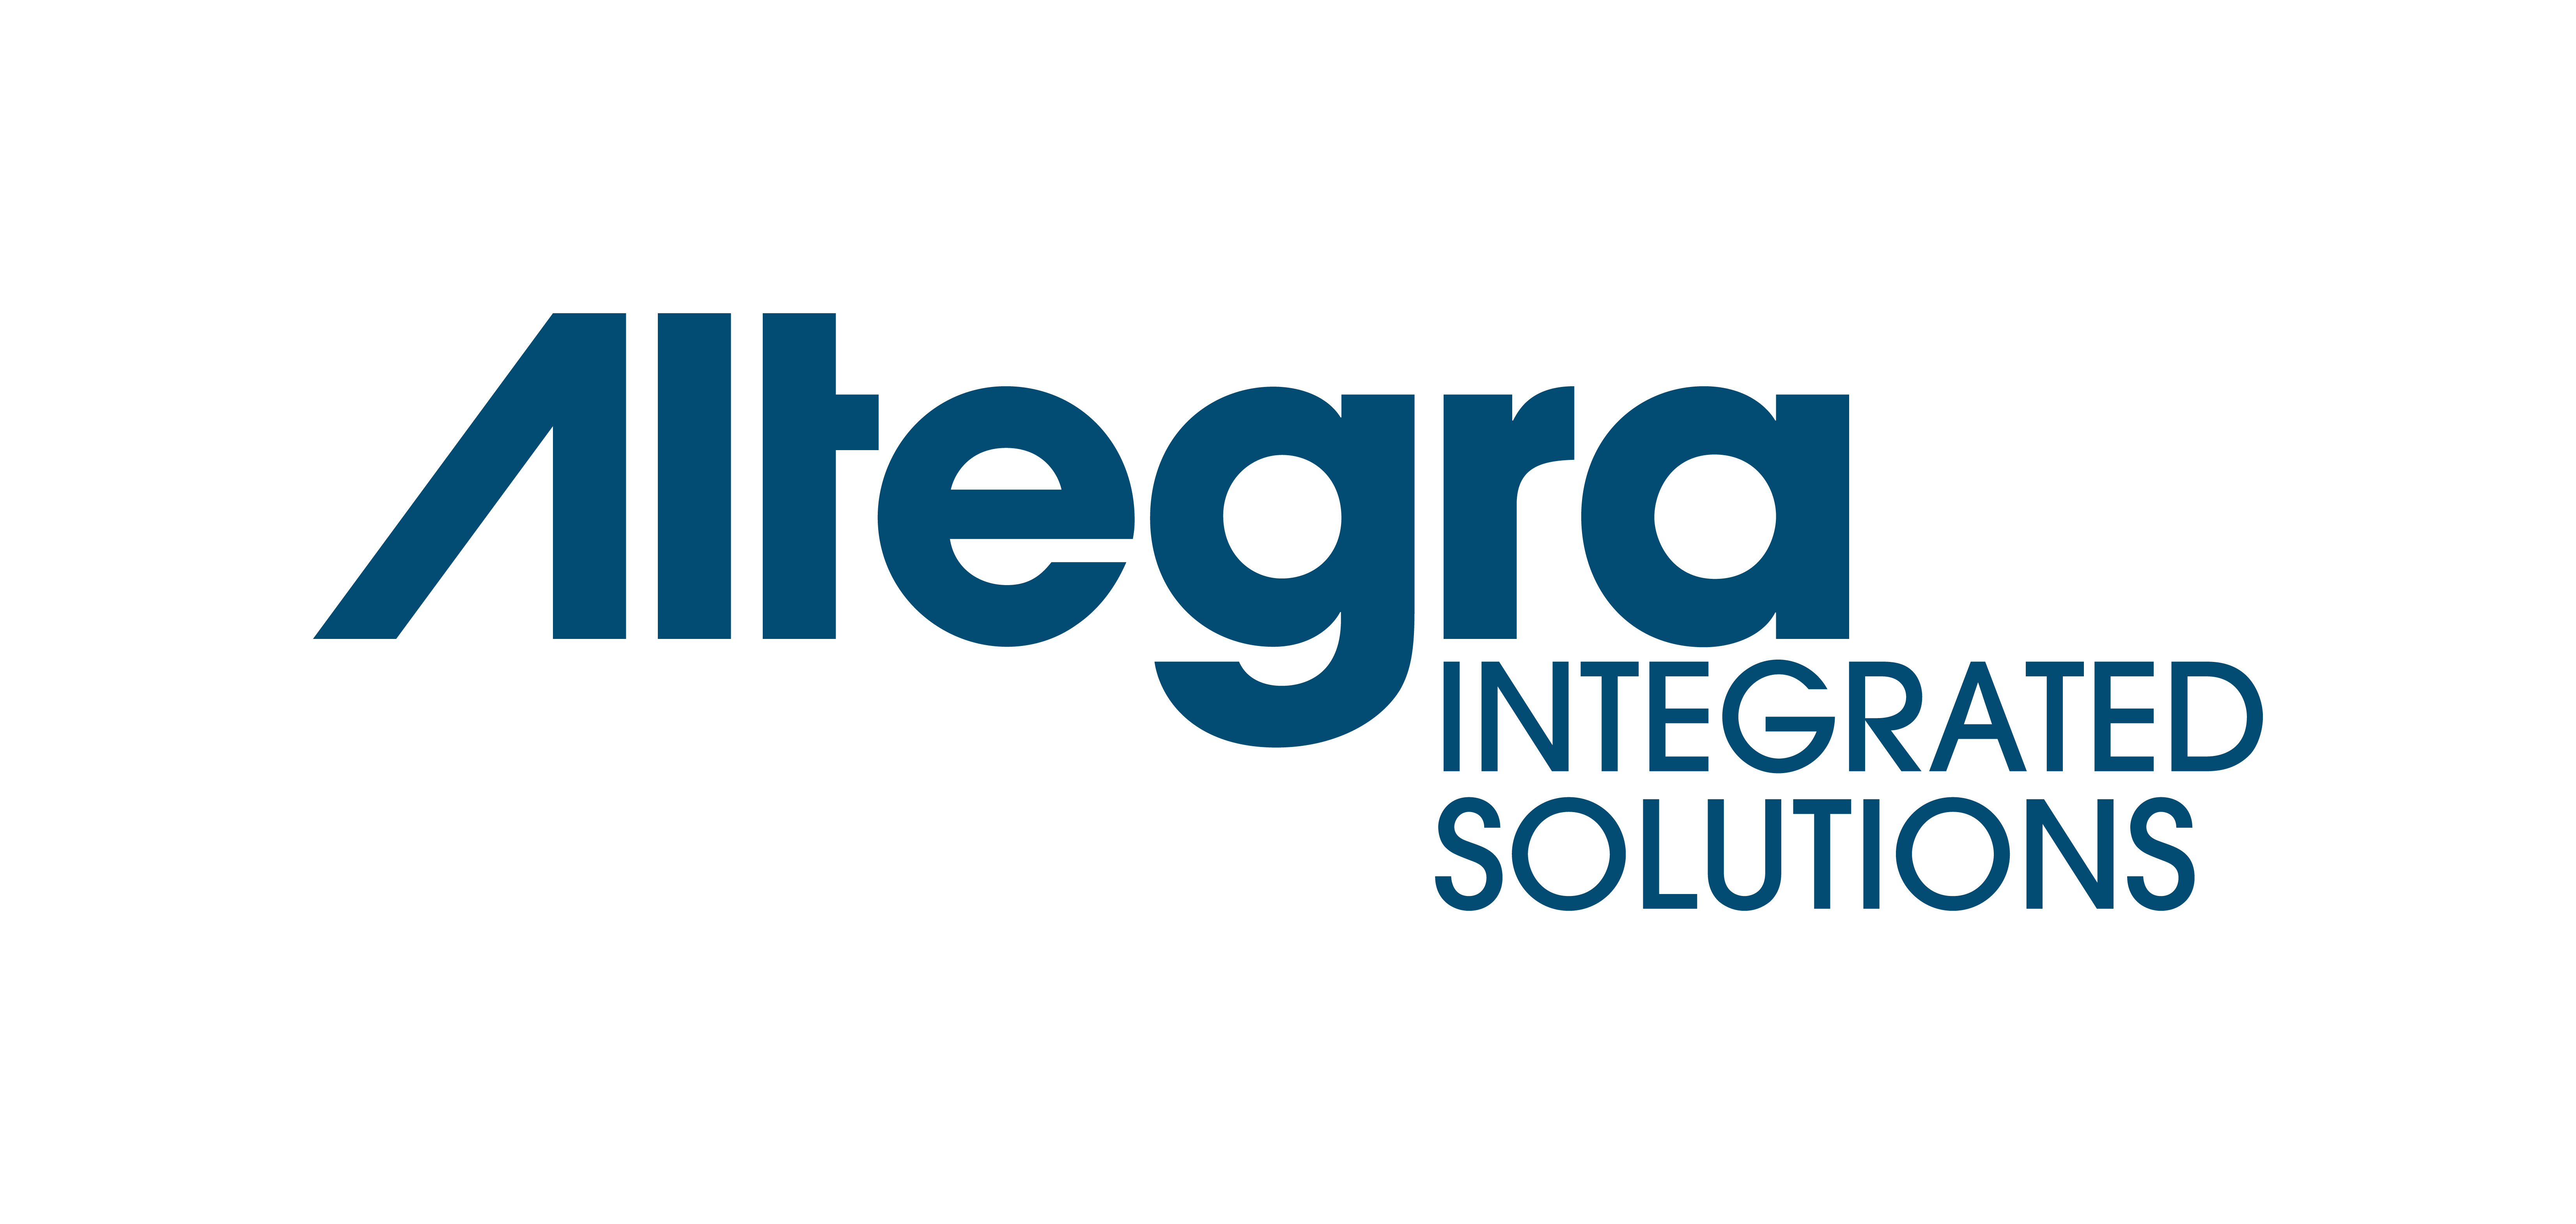 Amvar x Lift West Join Forces to Become Altegra